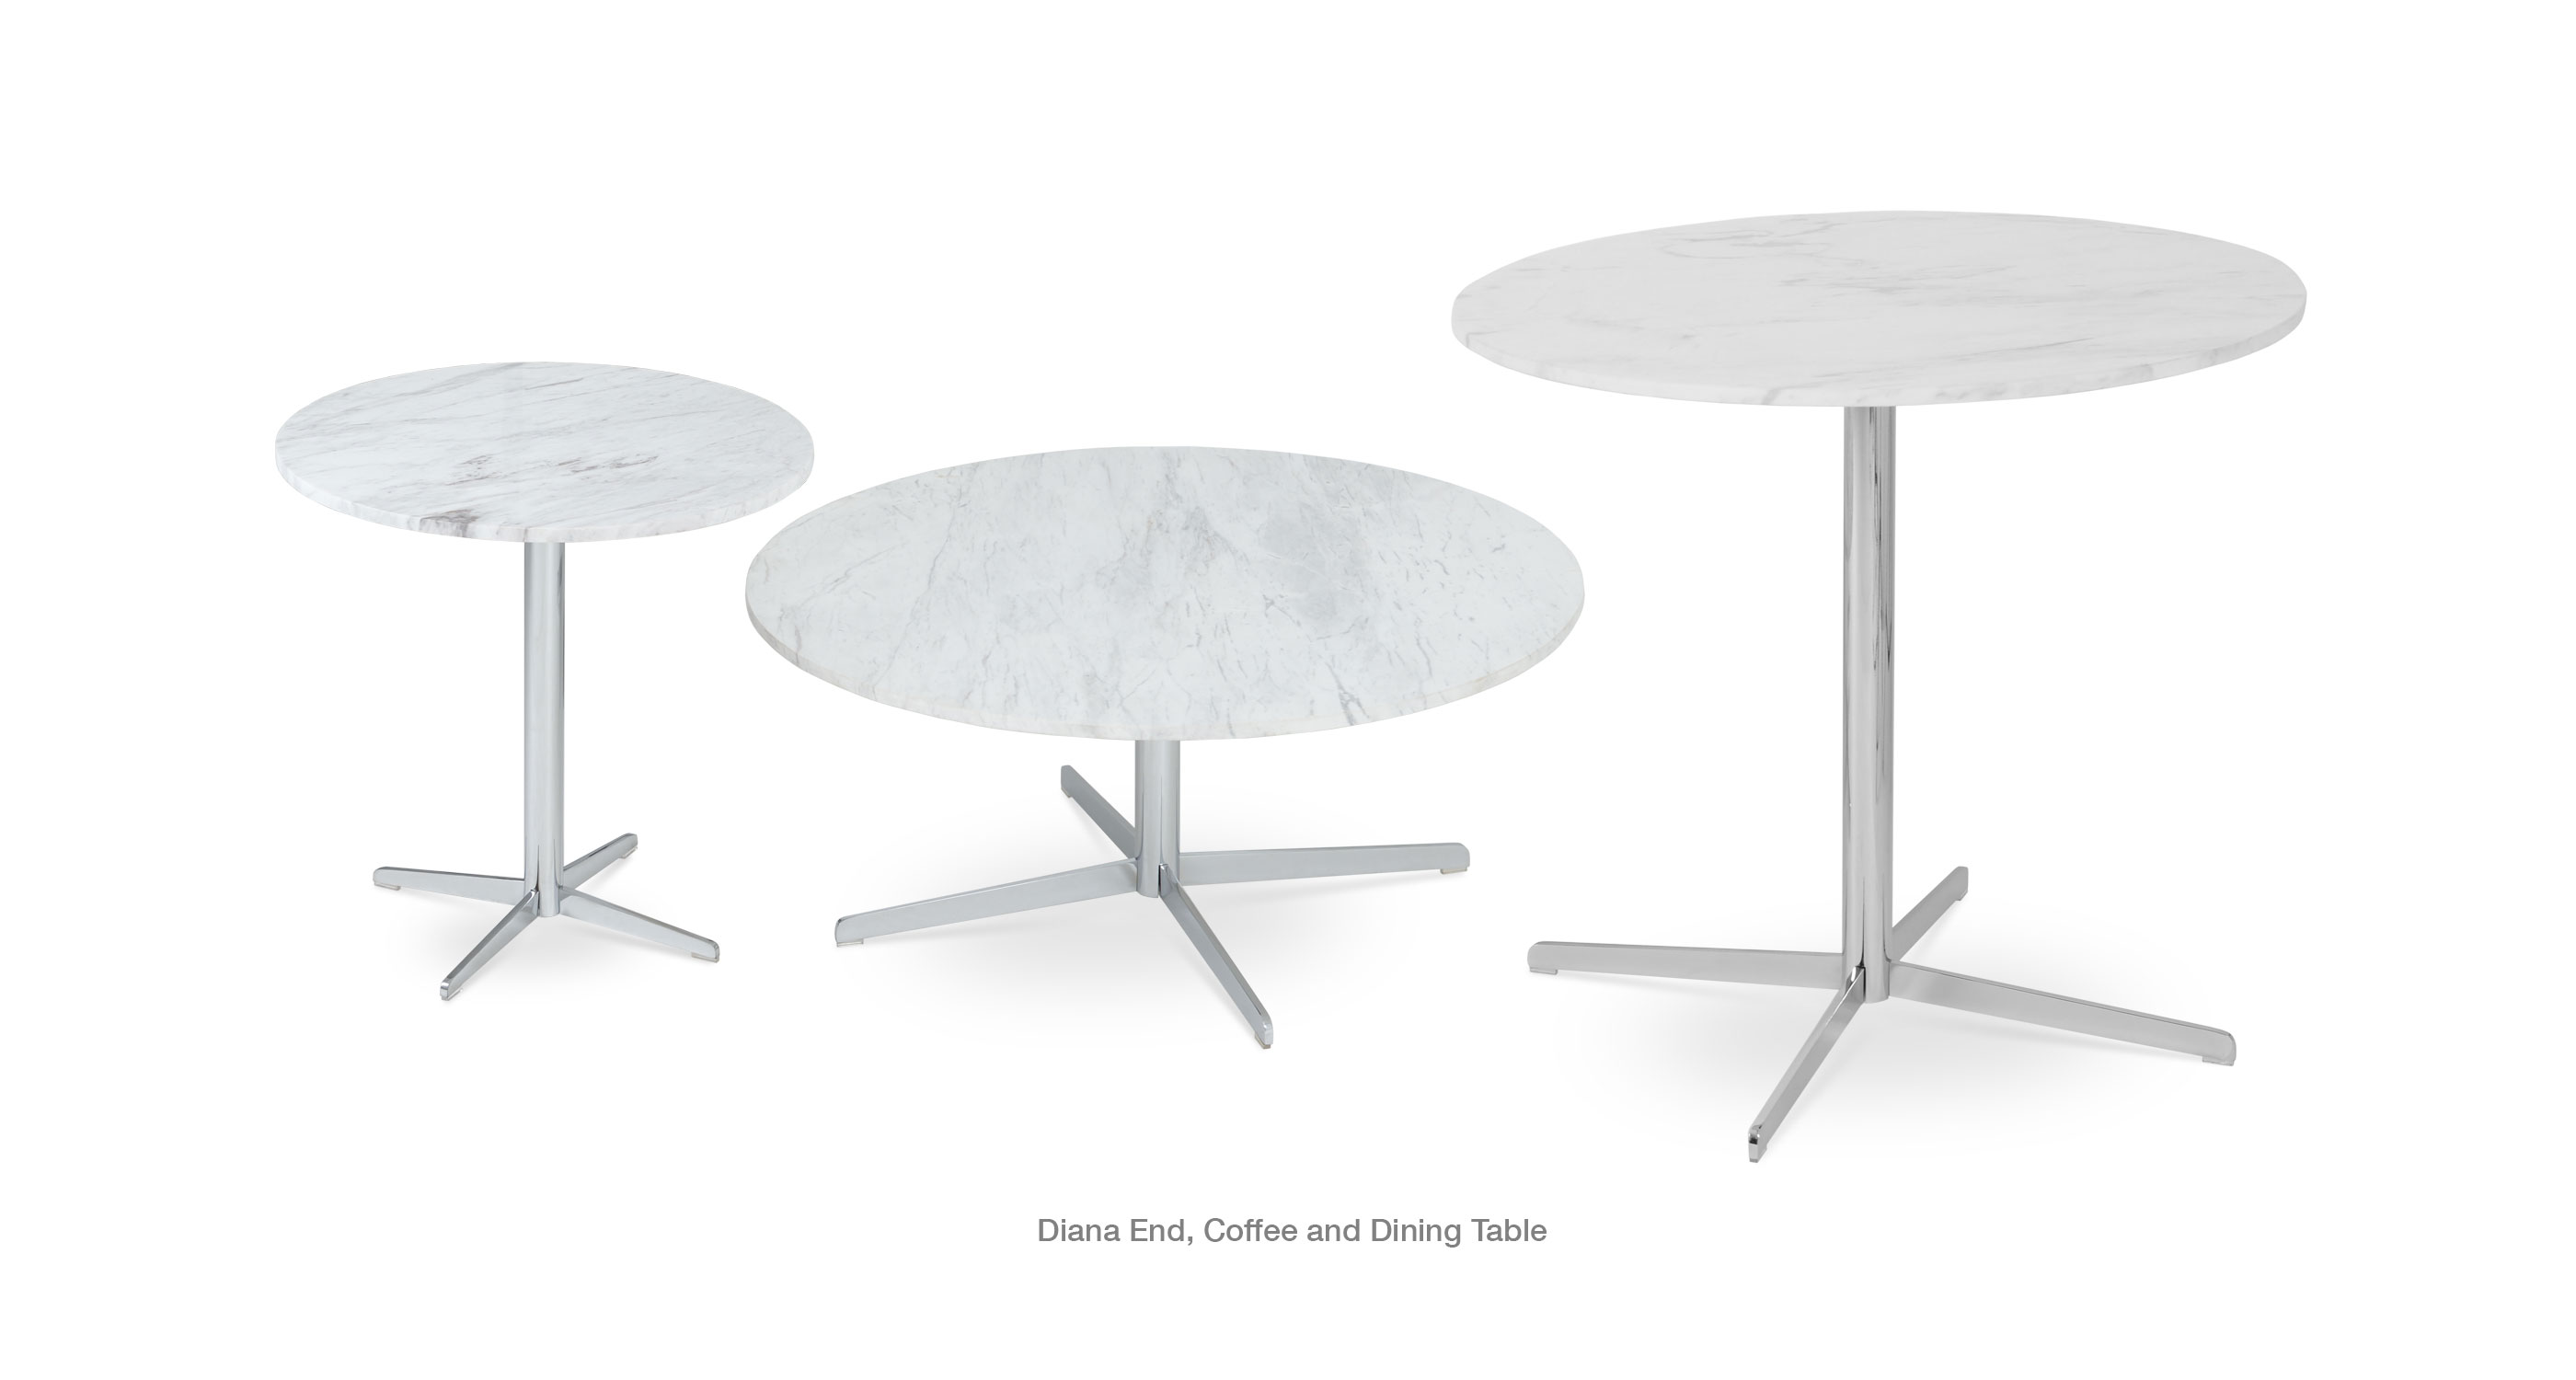 Diana End Coffee Dining Marble